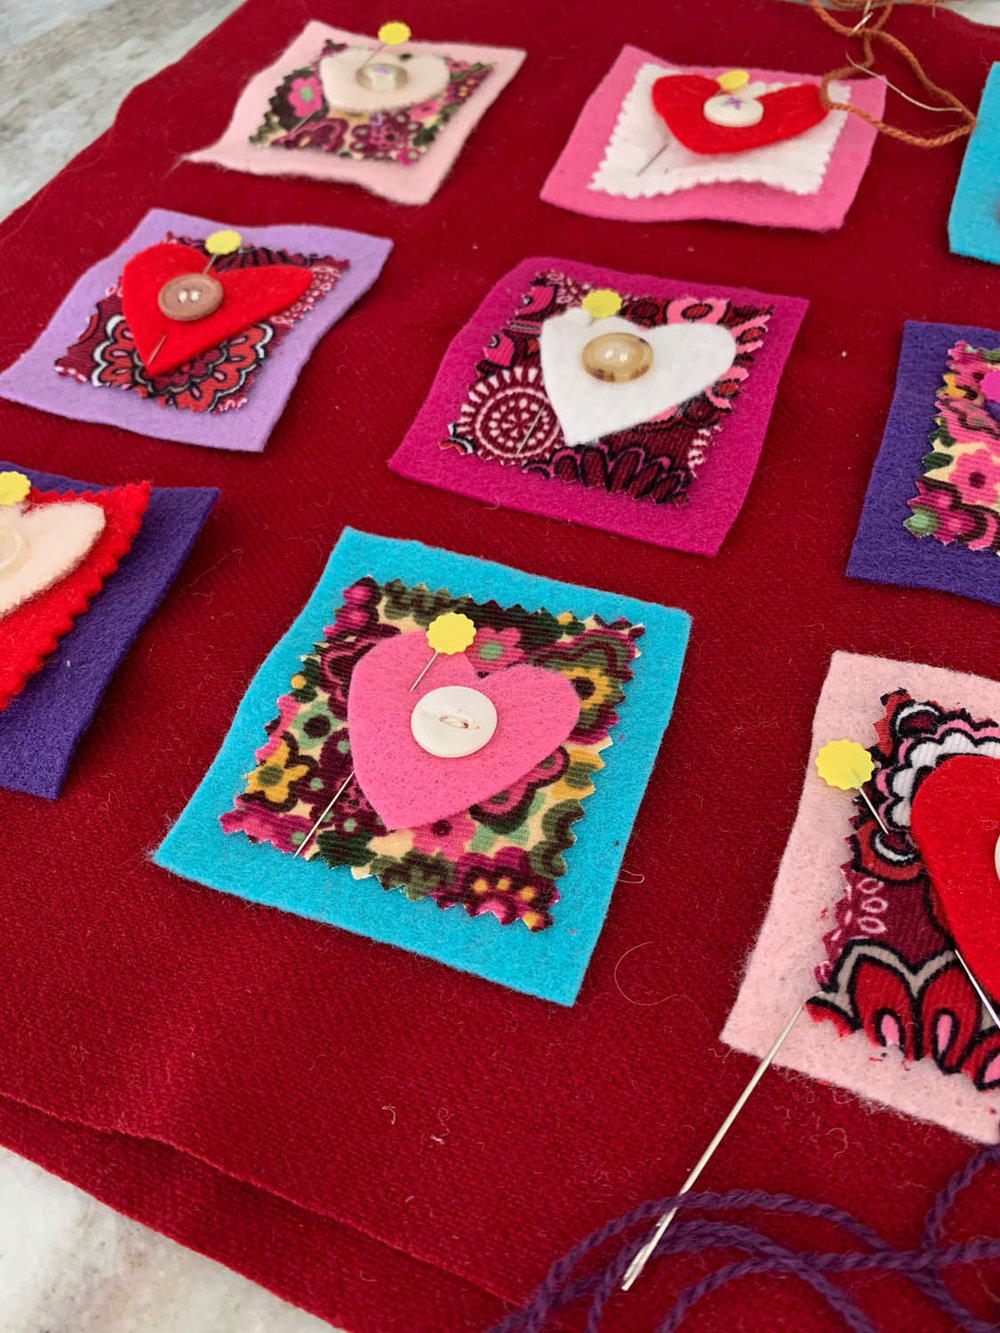 button trimmed felt hearts pinned to felt and fabric squares to make a nine-patch Valentine's Day pillow